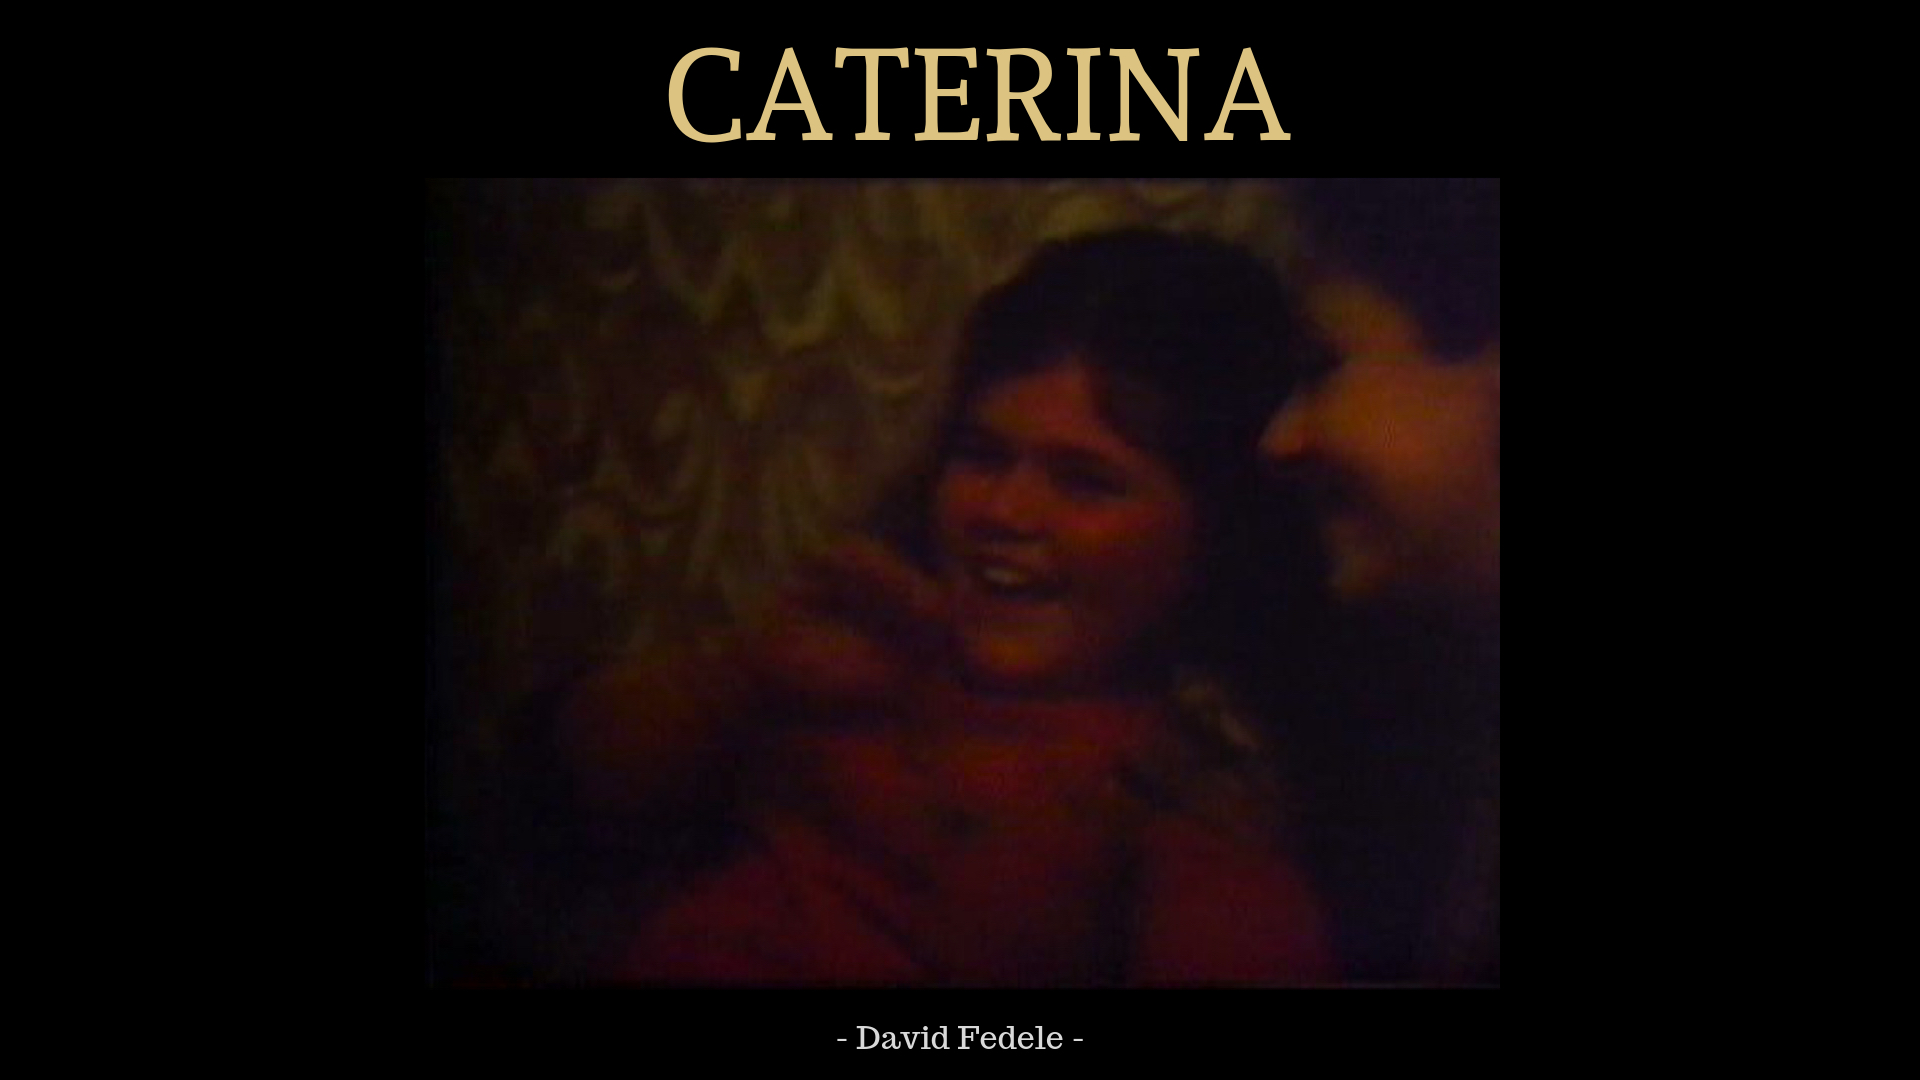 caterina-cover-image-16-9